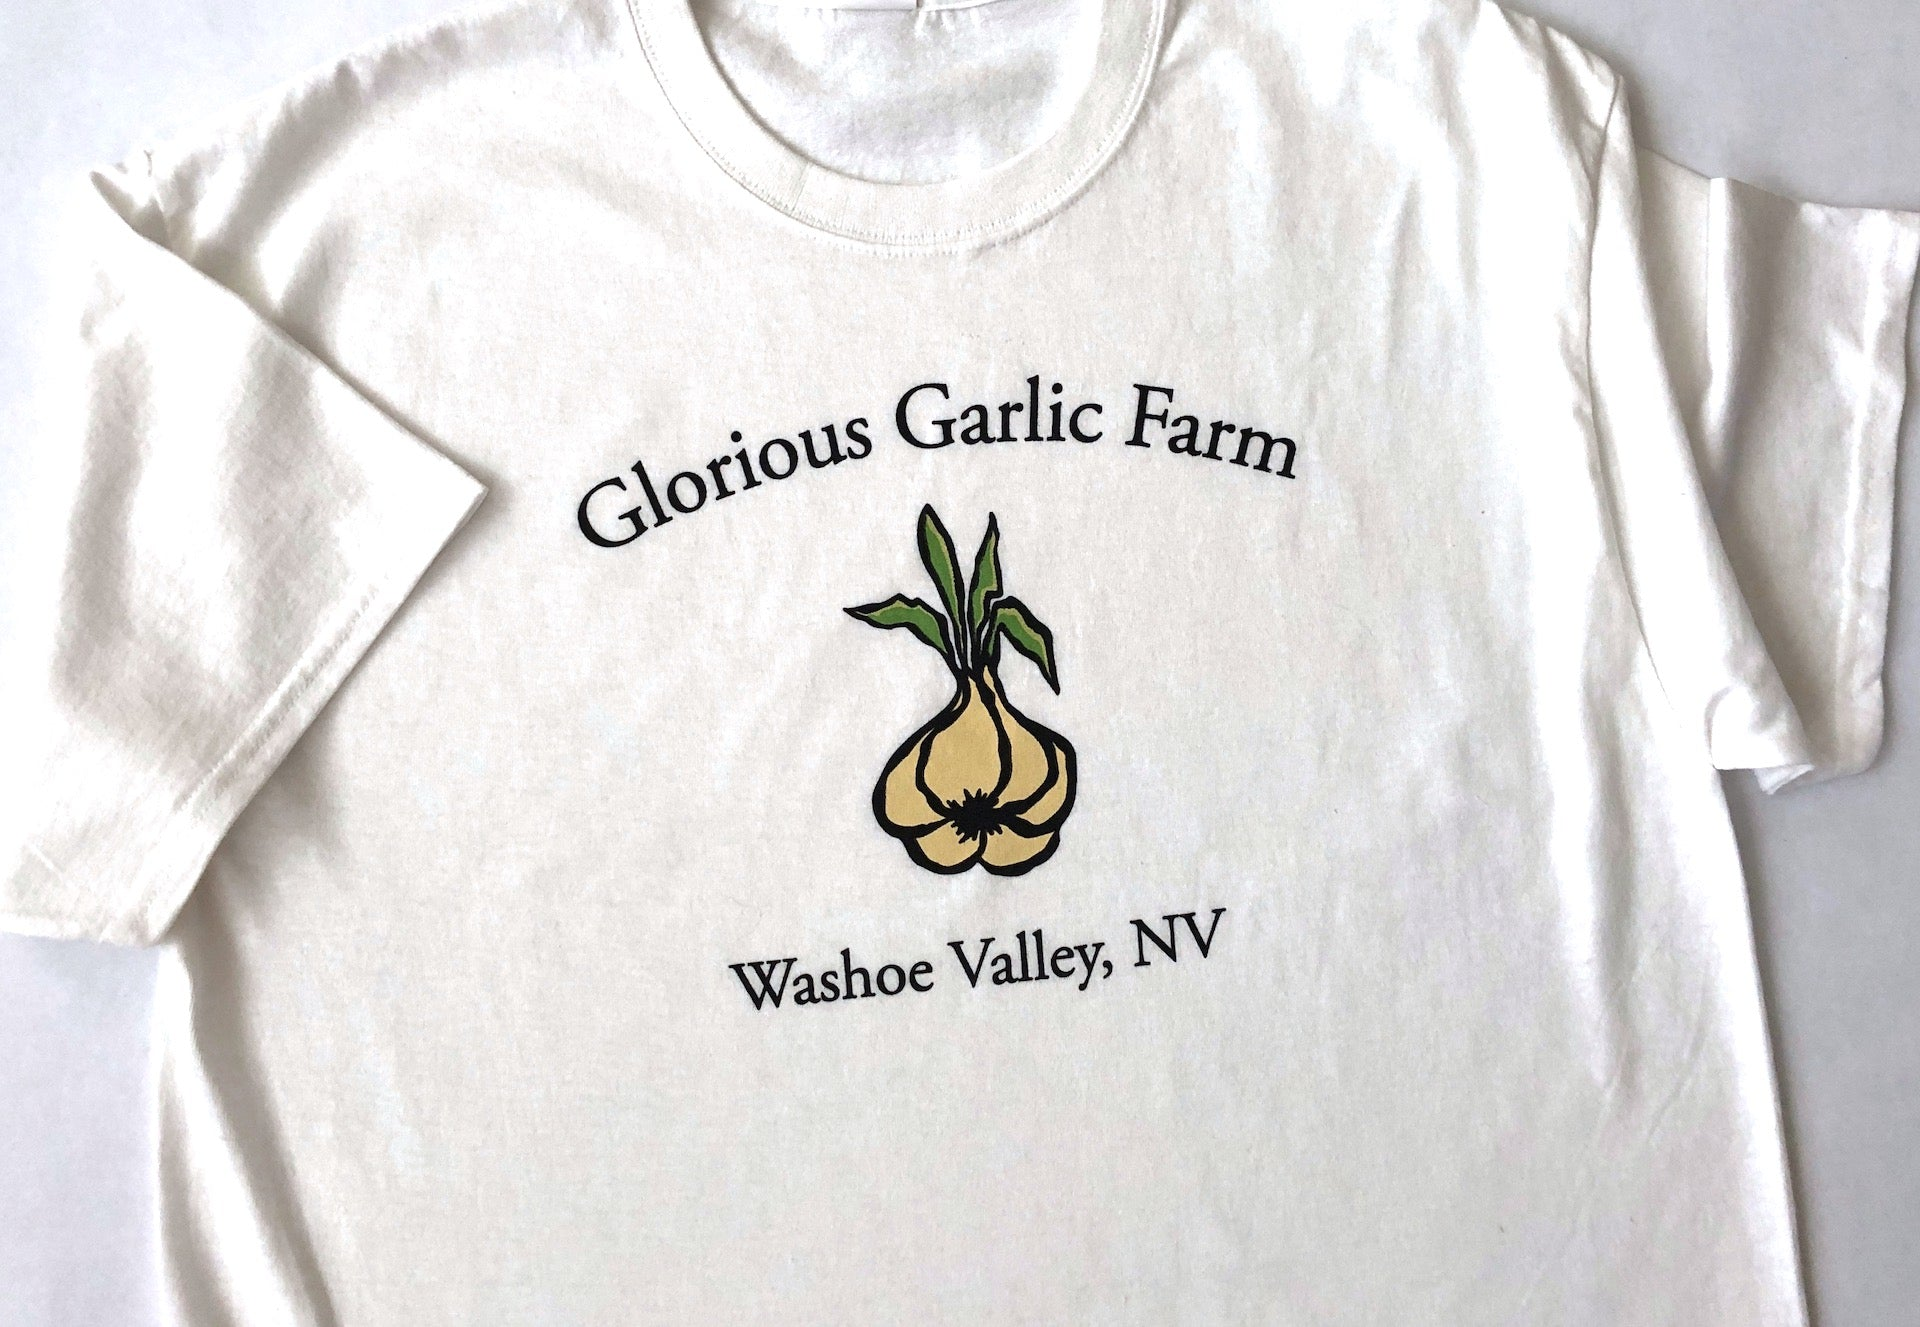 Glorious Garlic Farm Men's Short Sleeved T-Shirt -Bright White  FREE SHIPPING